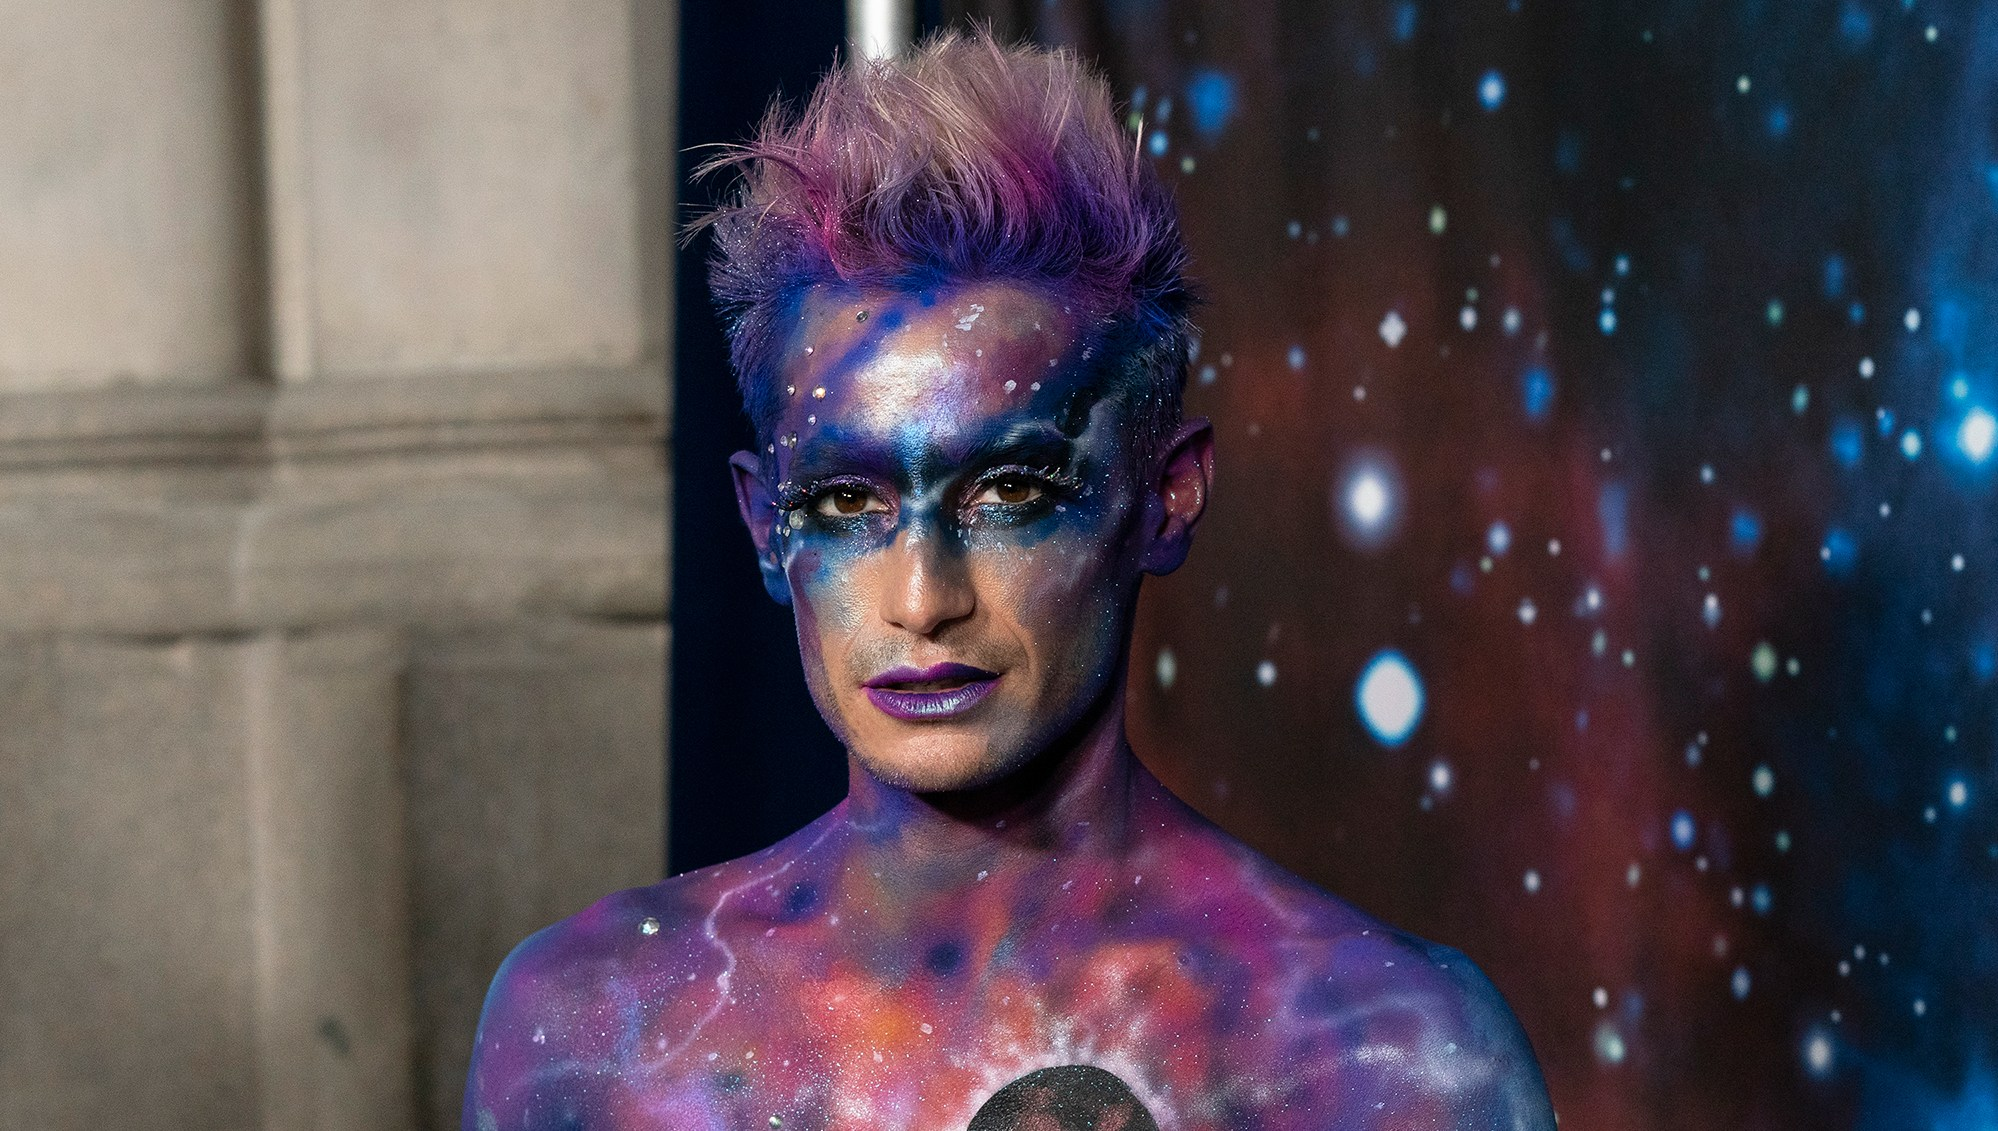 Frankie Grande Reveals His Moment of Clarity to Get Sober 'Came After the Manchester Bombings'